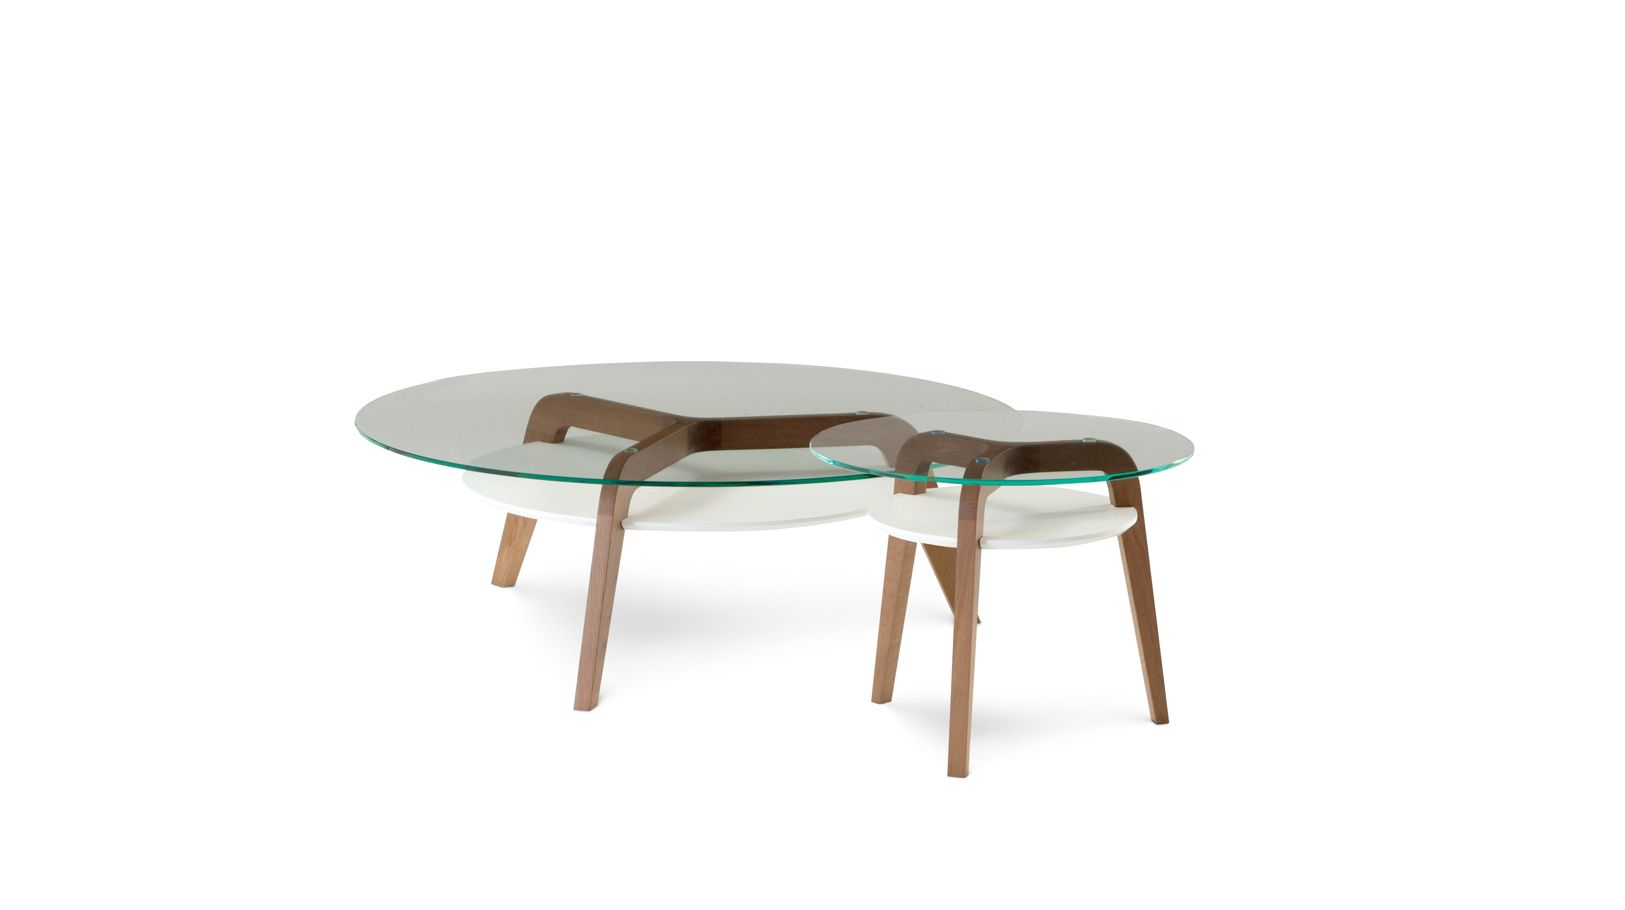 Flying glass cocktail table roche bobois - Table ovale marbre roche bobois ...